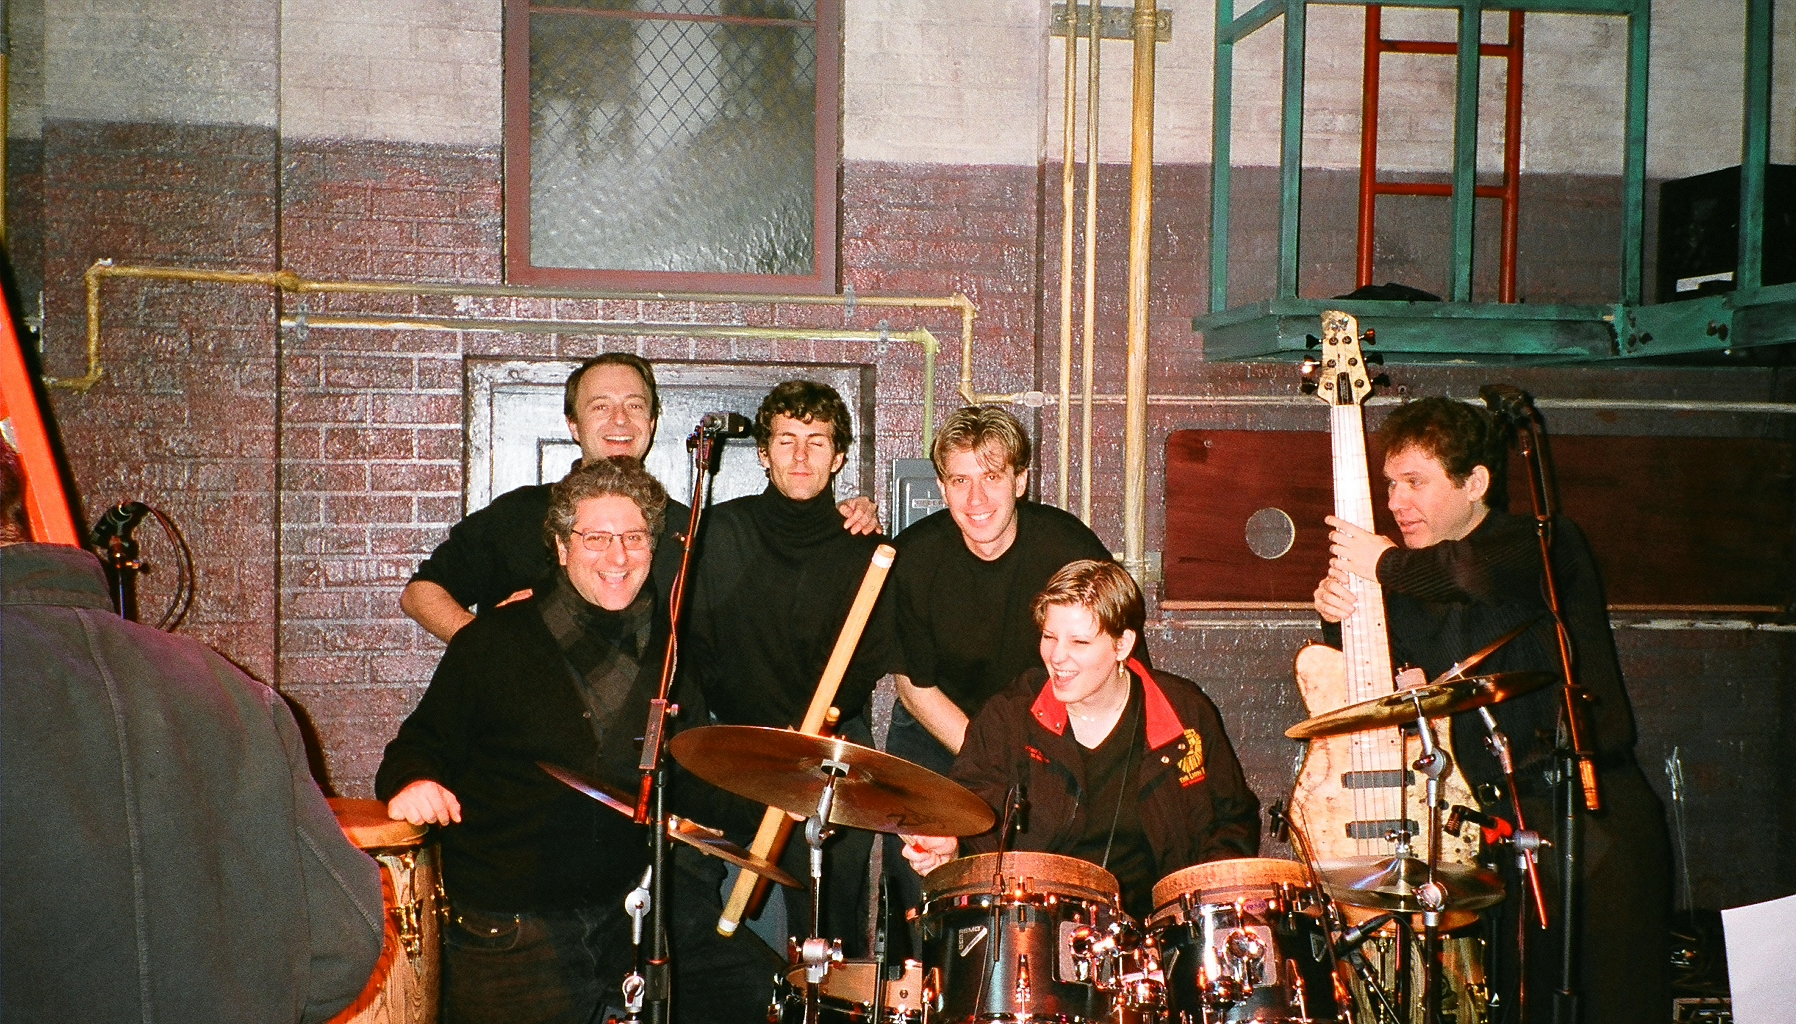 The band at Rosie O'Donnell.jpg